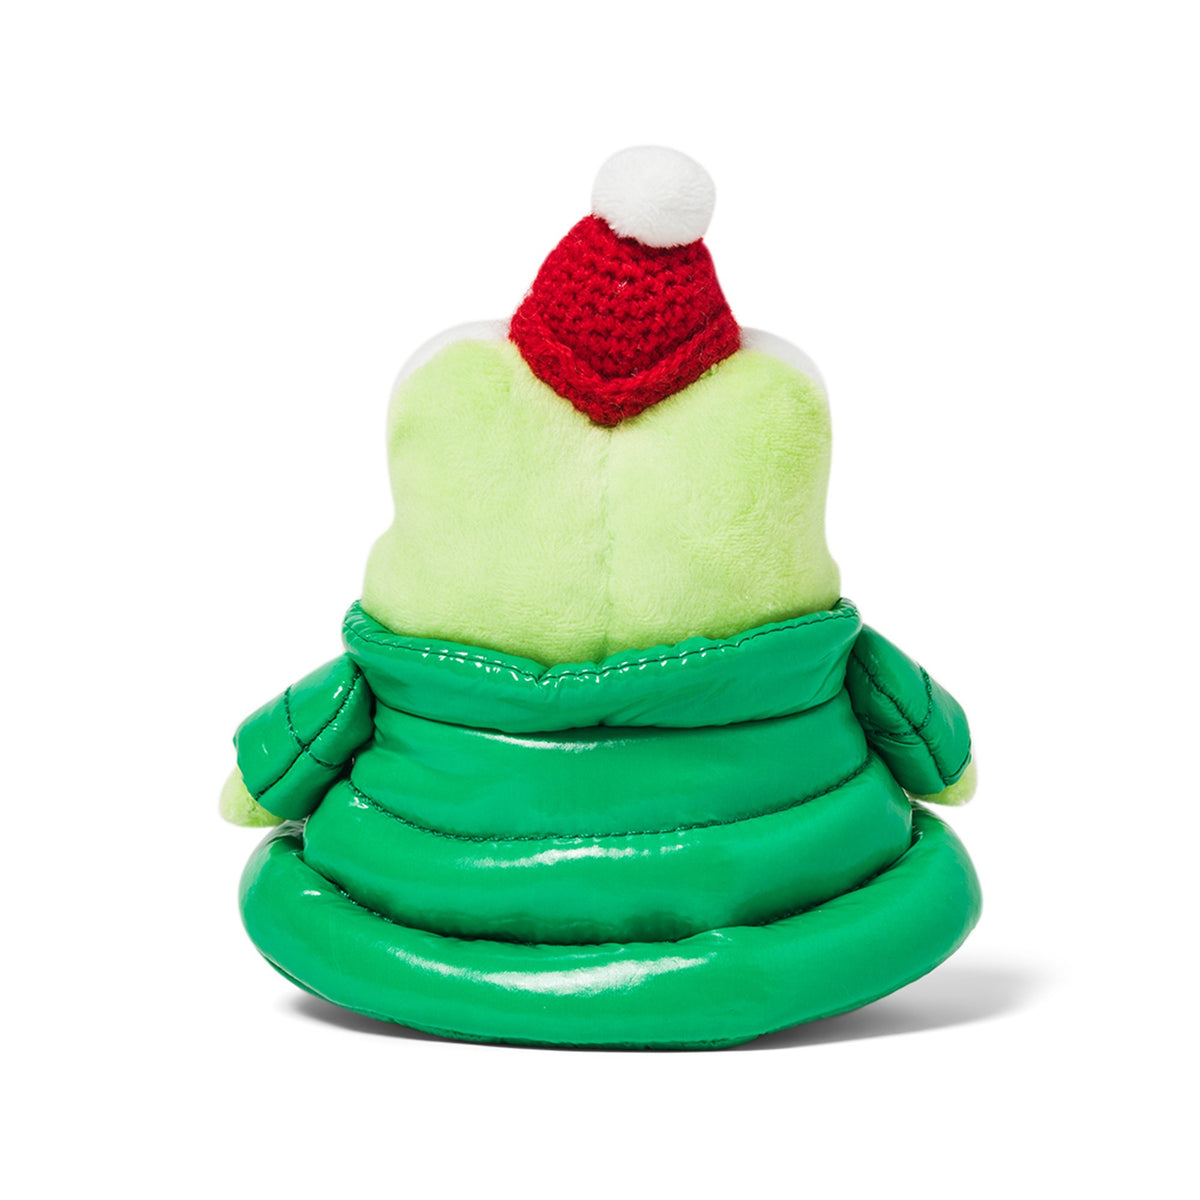 "Keroppi Puffer Down Jacket 6"" Plush"